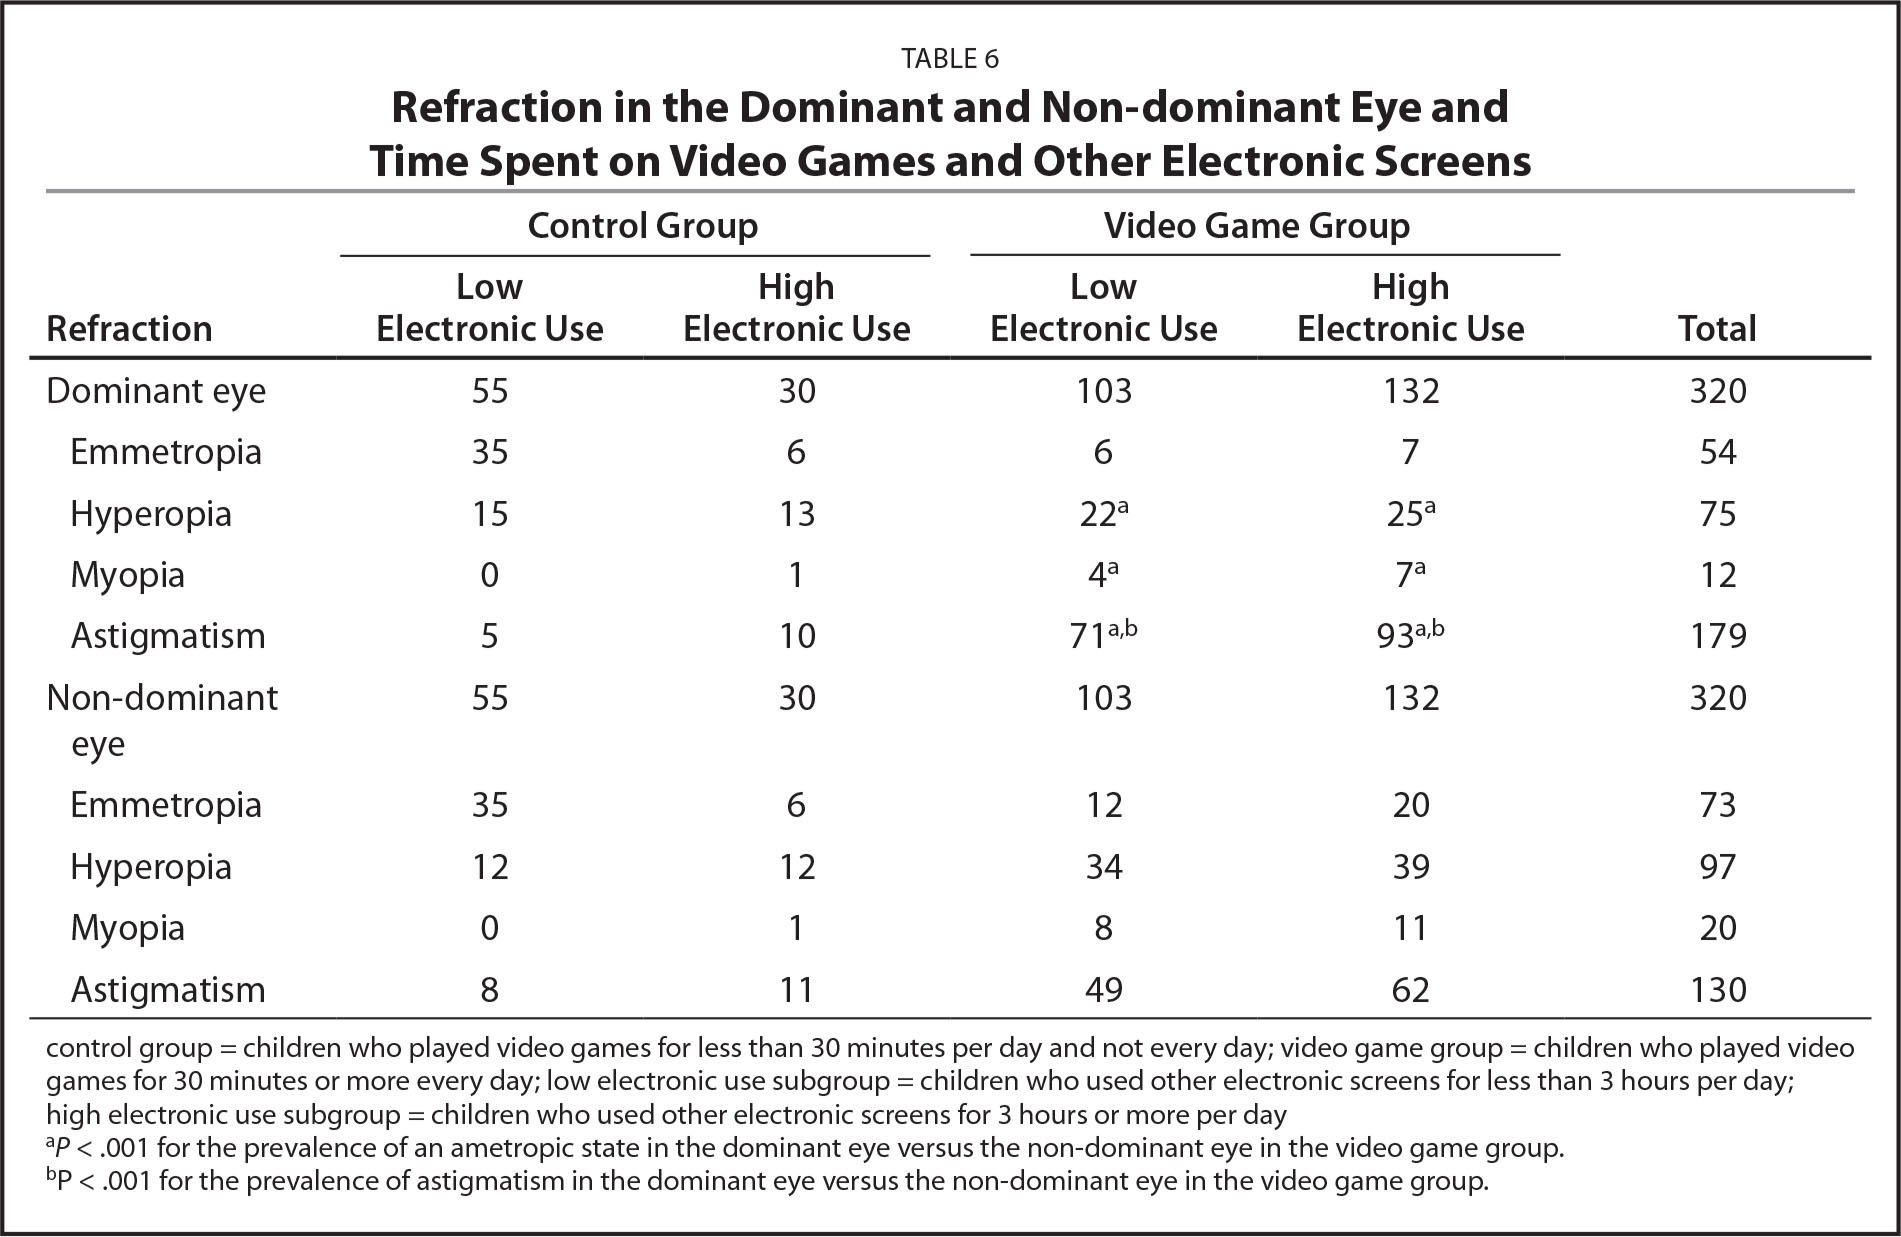 Refraction in the Dominant and Non-dominant Eye and Time Spent on Video Games and Other Electronic Screens